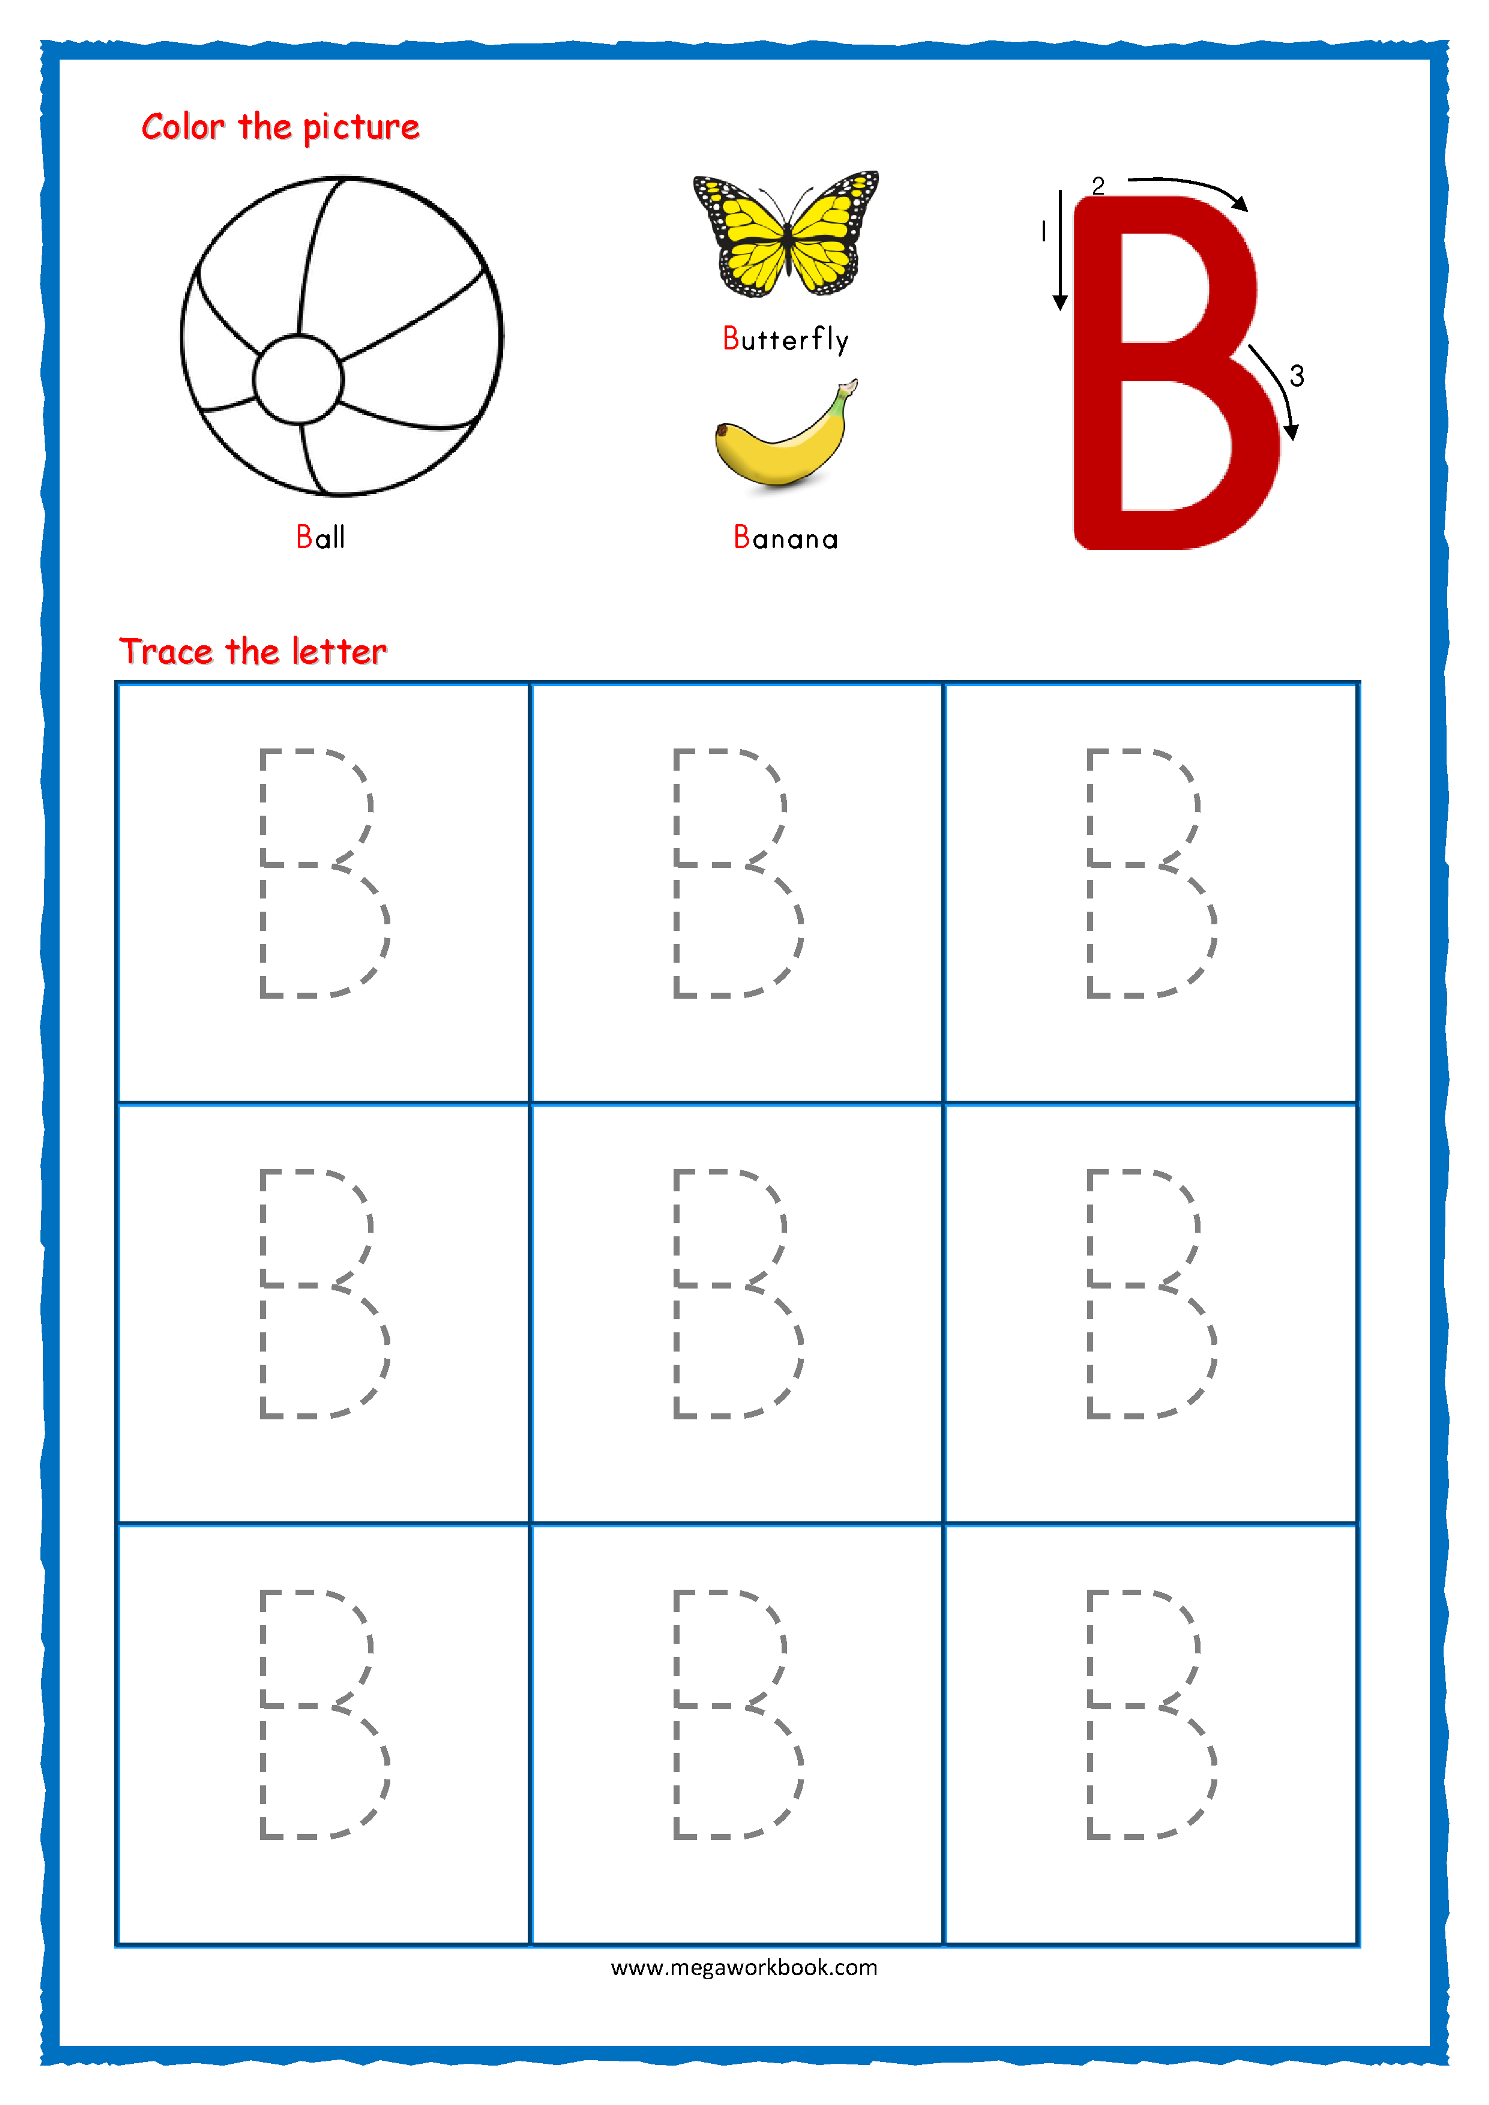 Coloring Book : Letter Tracingts Free Printable Coloring within Tracing Of Letters Worksheets